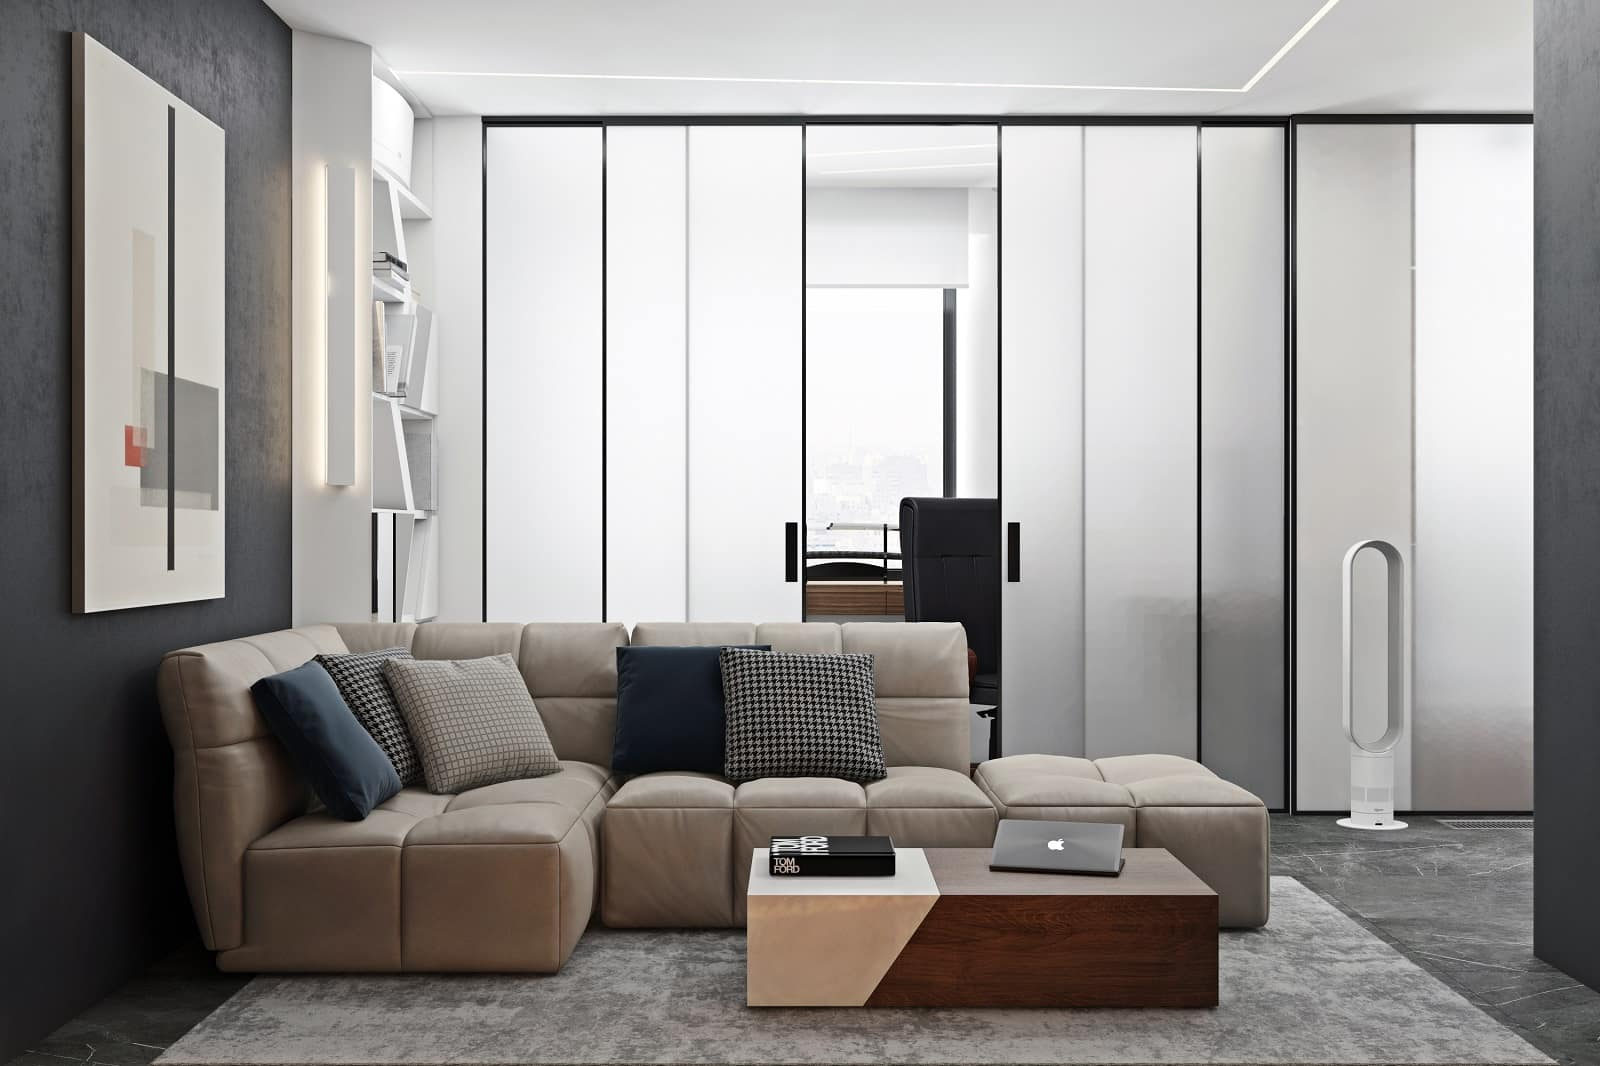 Great designed living room with the frosted glass panels to zone the areas